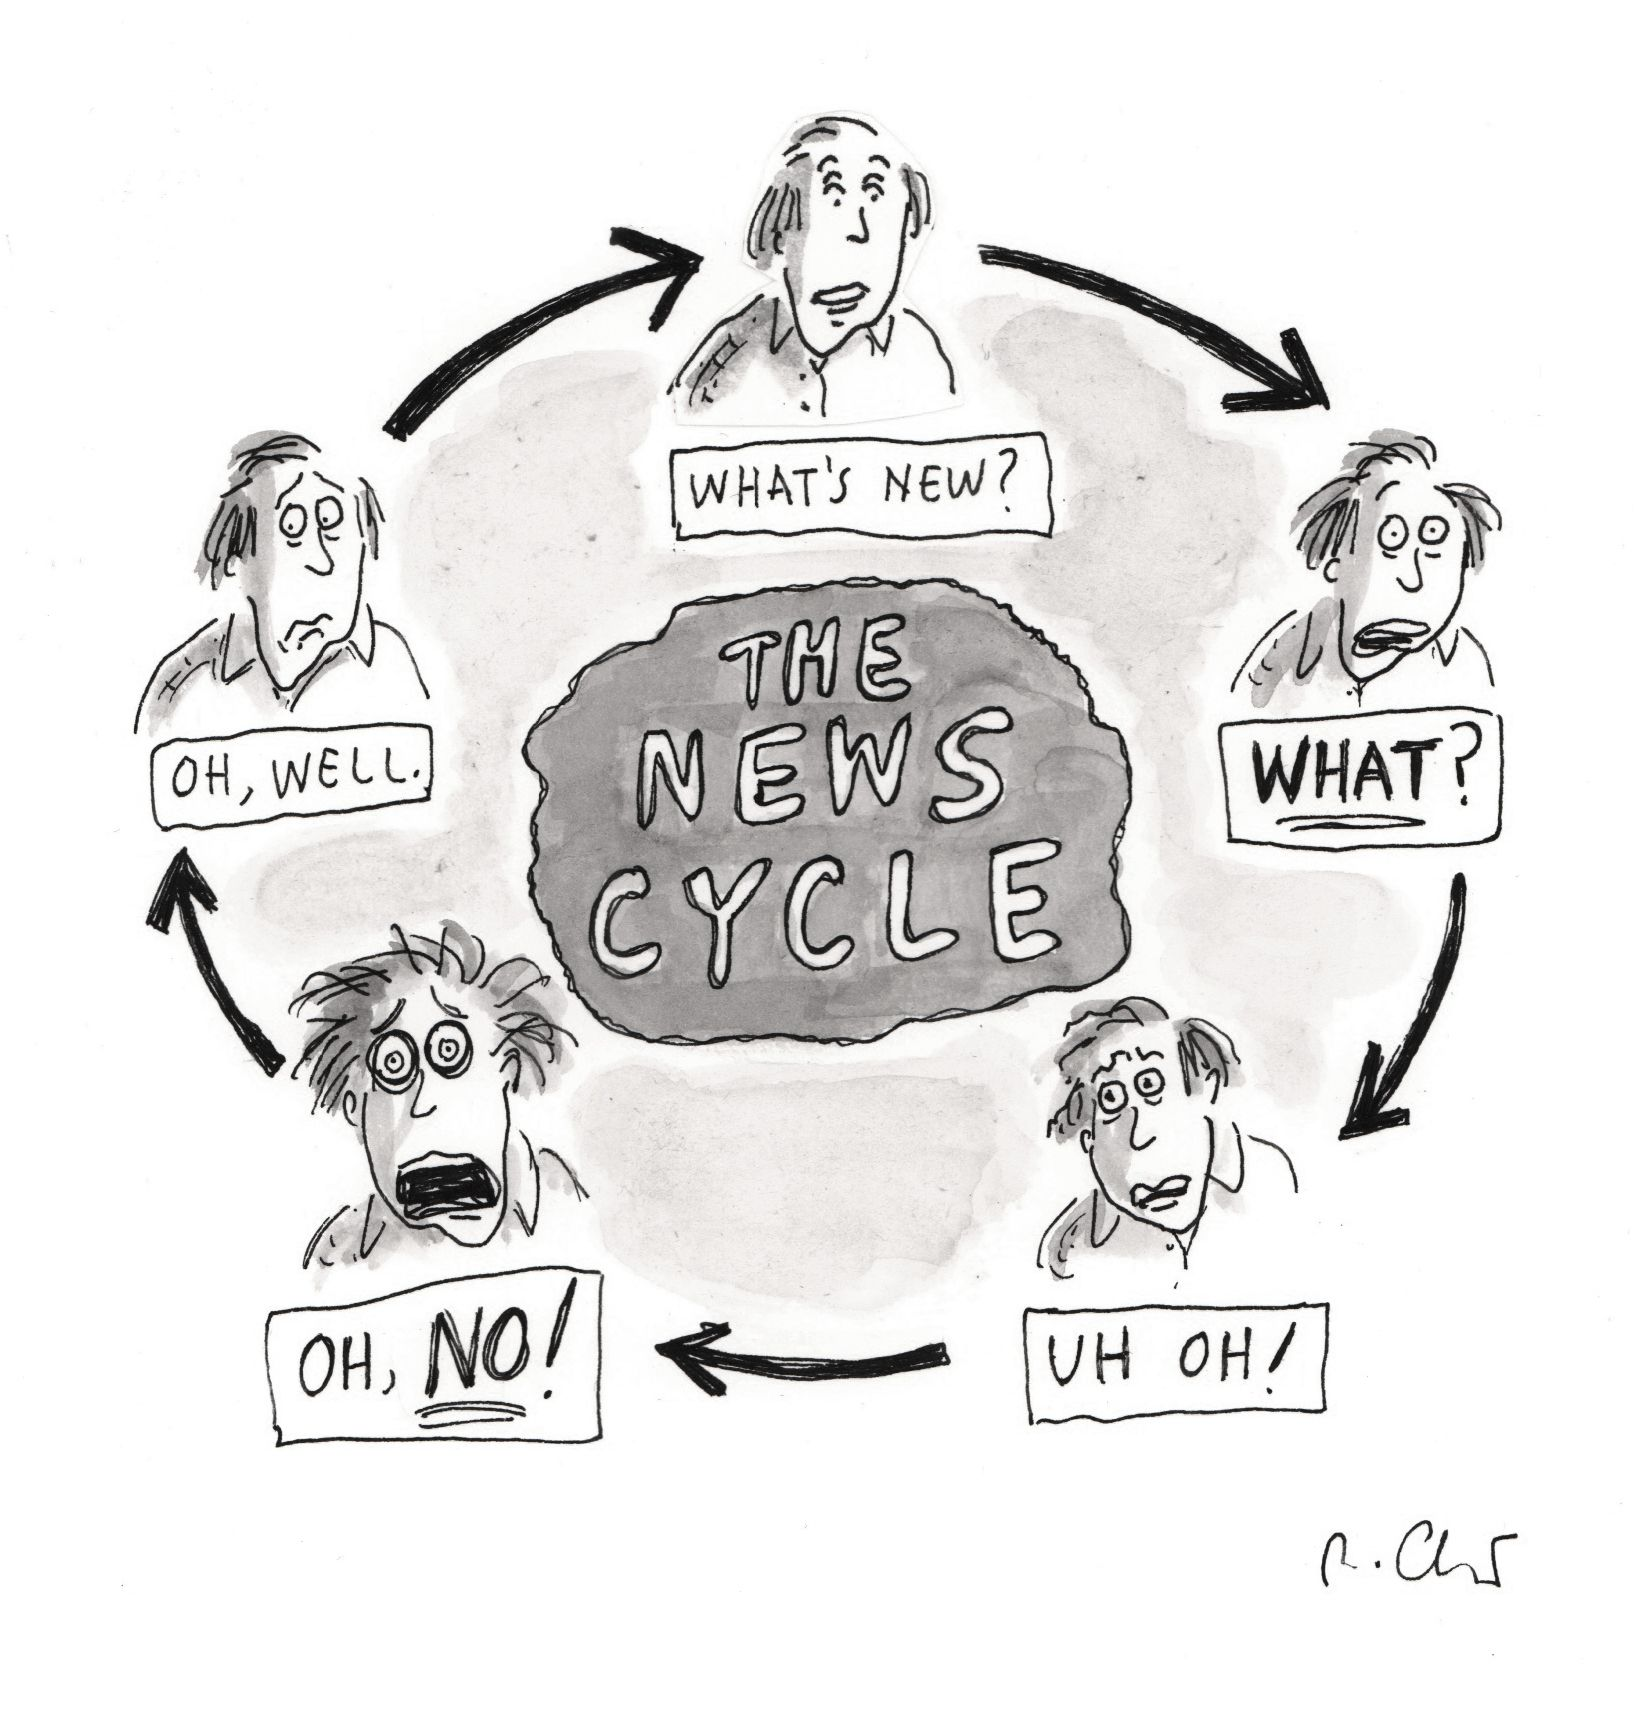 Roz Chast, The News Cycle, published November 15, 2010